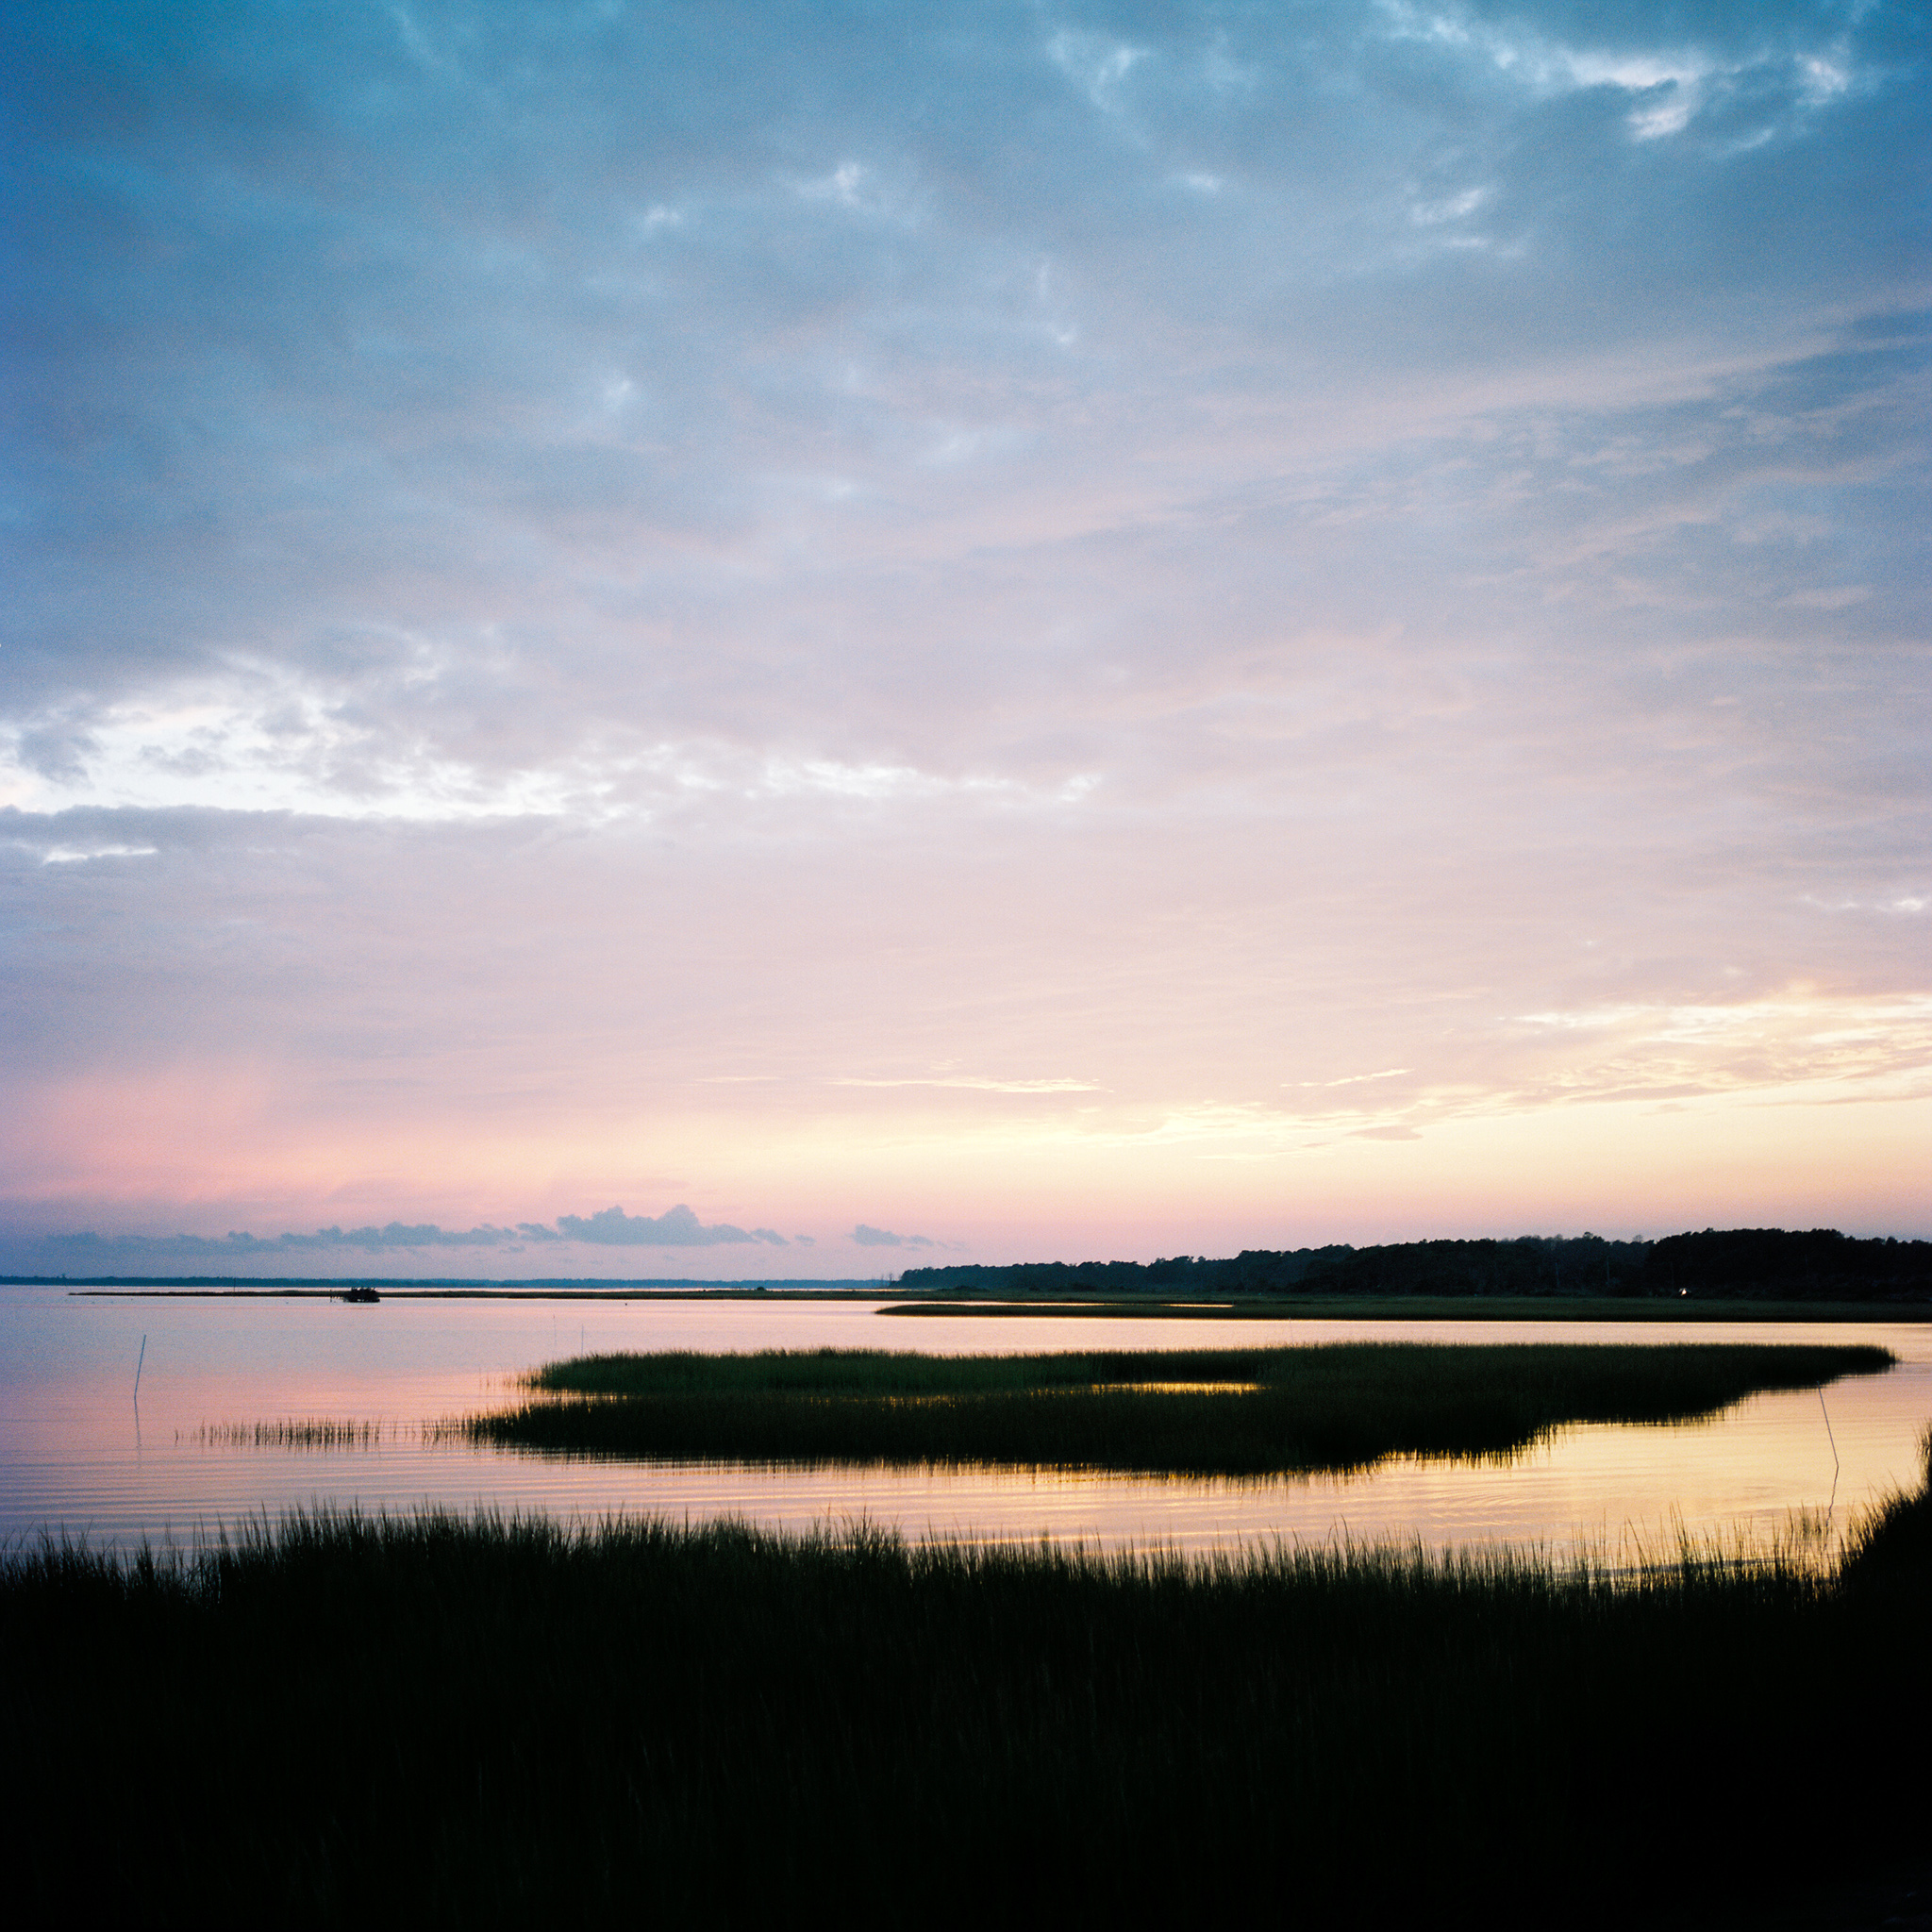 Sunset #1, Chincoteague, VA, 2016